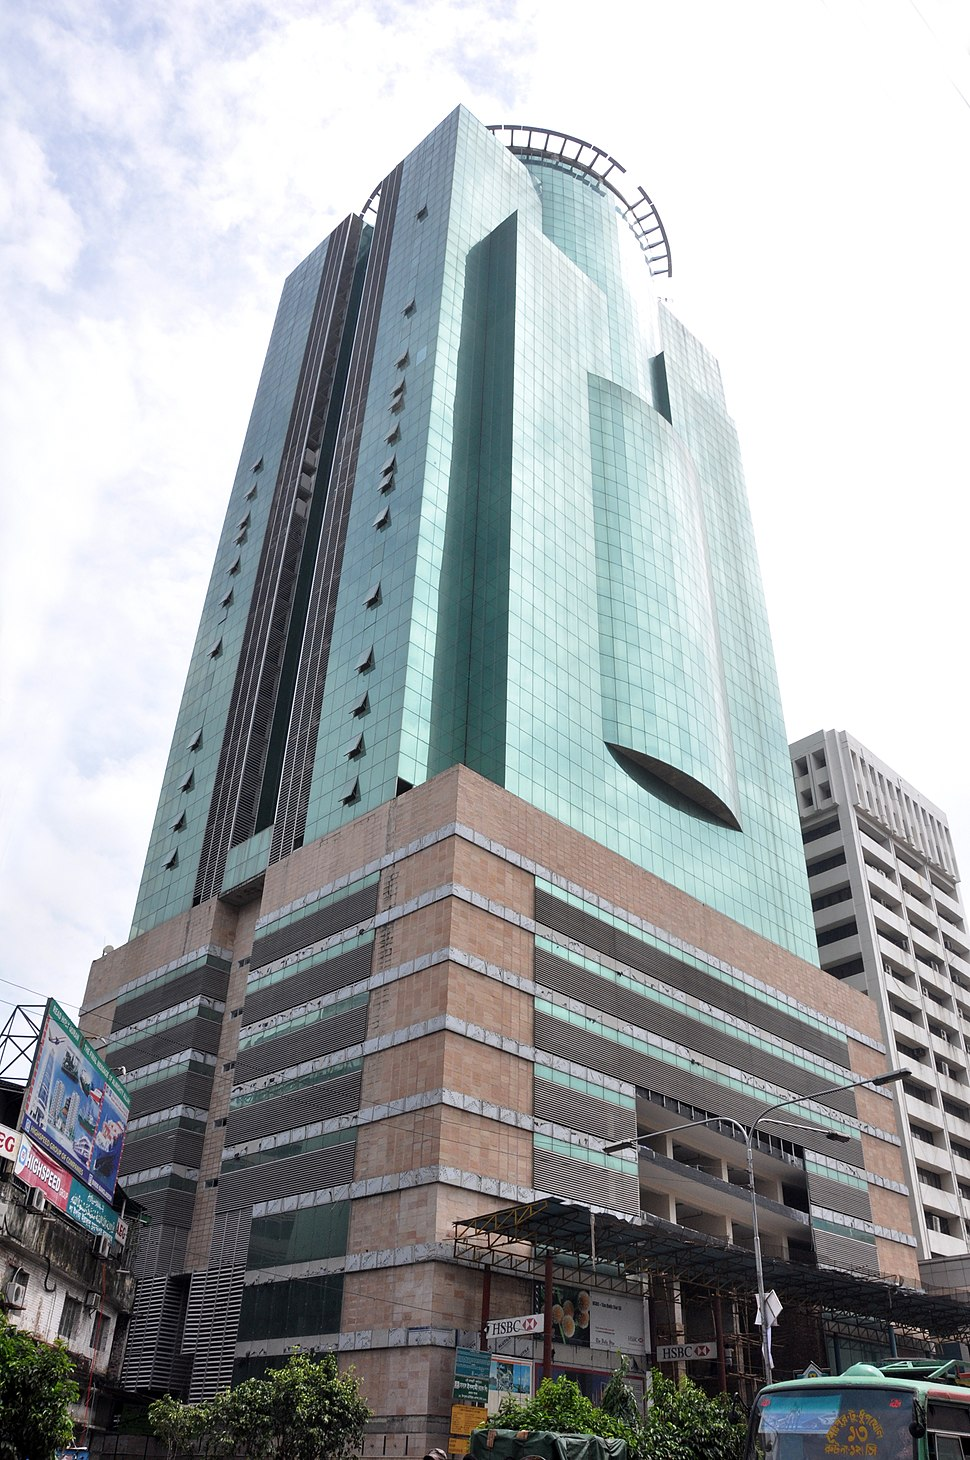 ORION Group constructed the highest building in the country City Centre